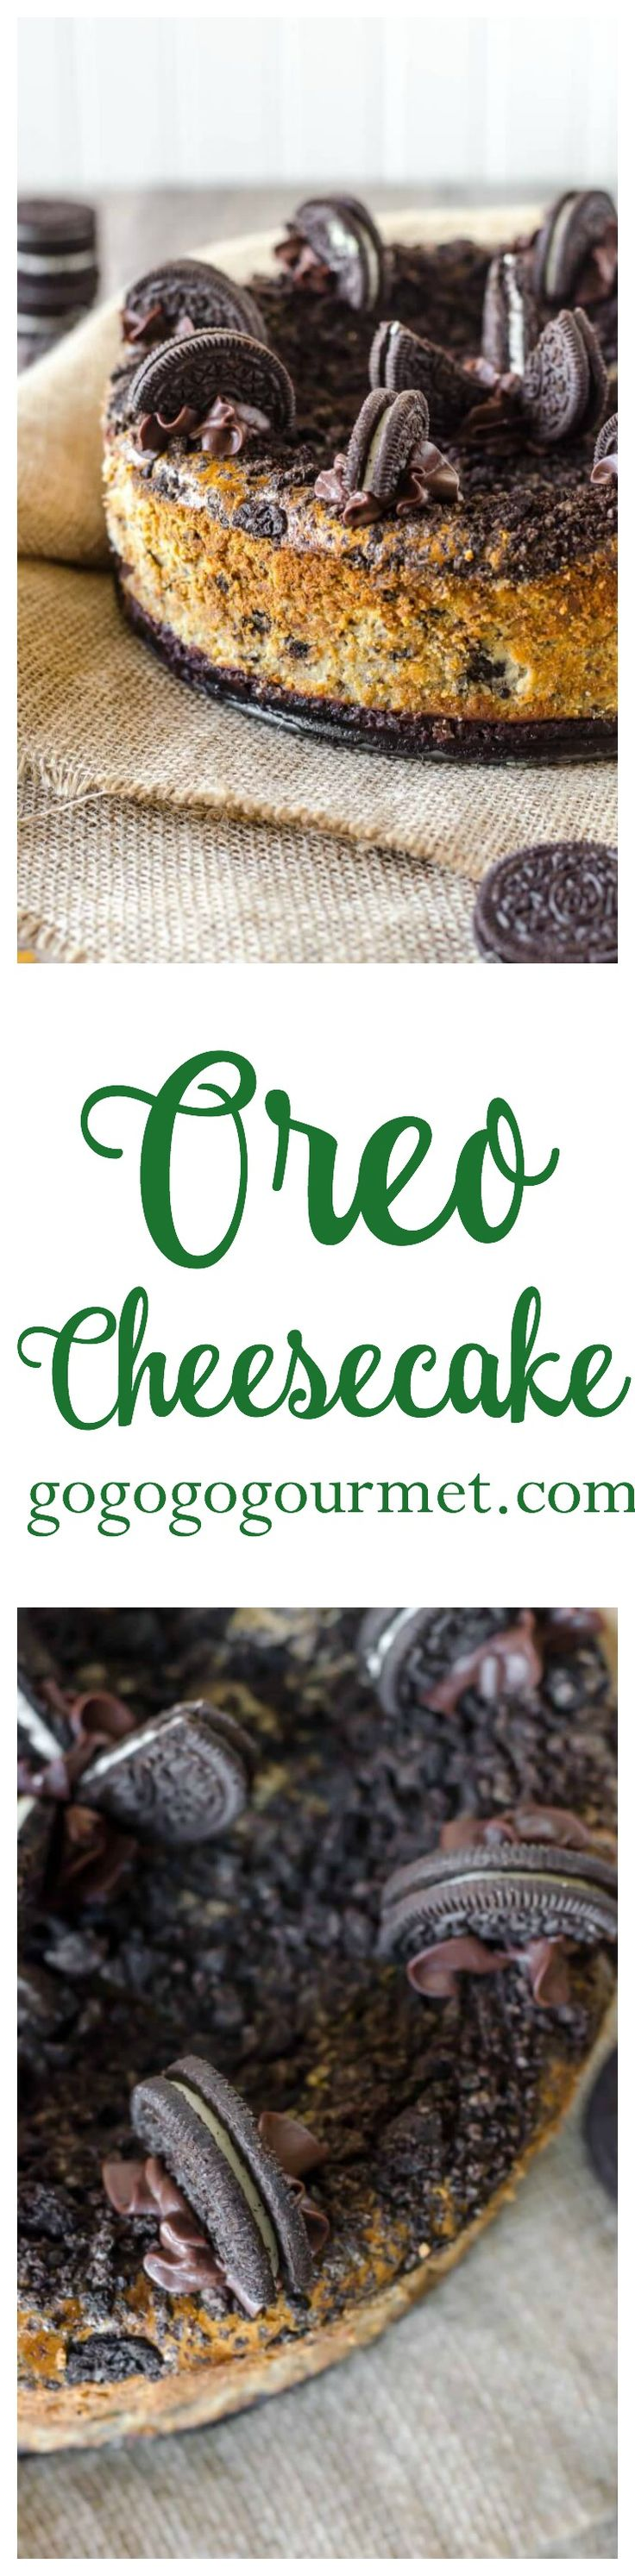 With FORTY Oreos in this cheesecake (plus a layer of chocolate ganache!), how could this be anything but incredible? Oreo Cheesecake | Go Go Go Gourmet @gogogogourmet